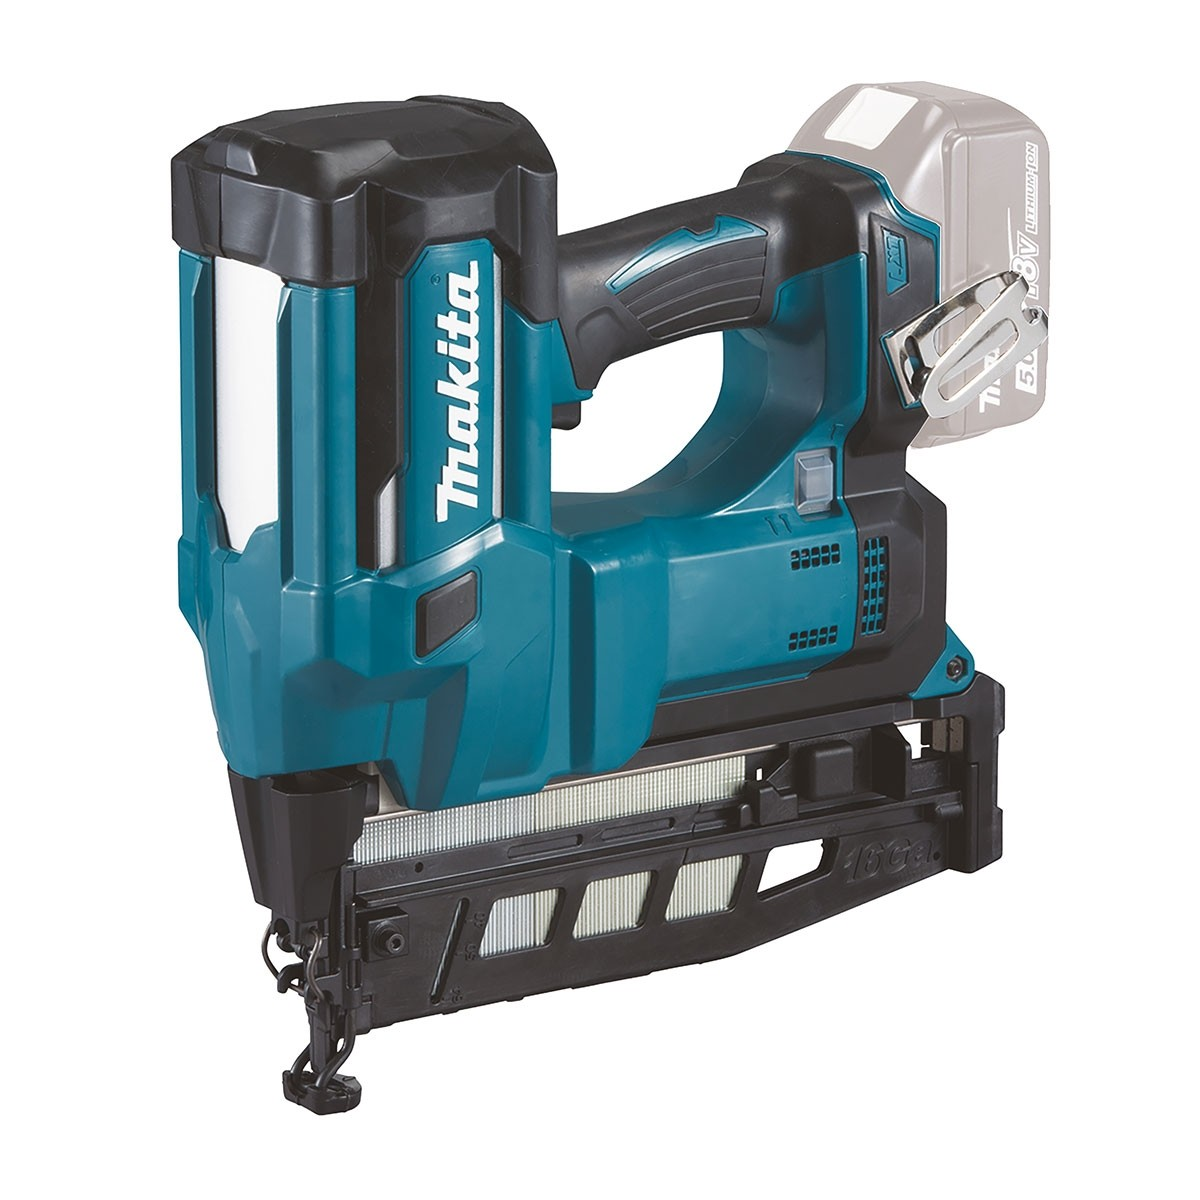 MAKITA 18V BRUSHLESS 16G 2ND FIX FINISH NAILER - DBN600 - BODY ONLY